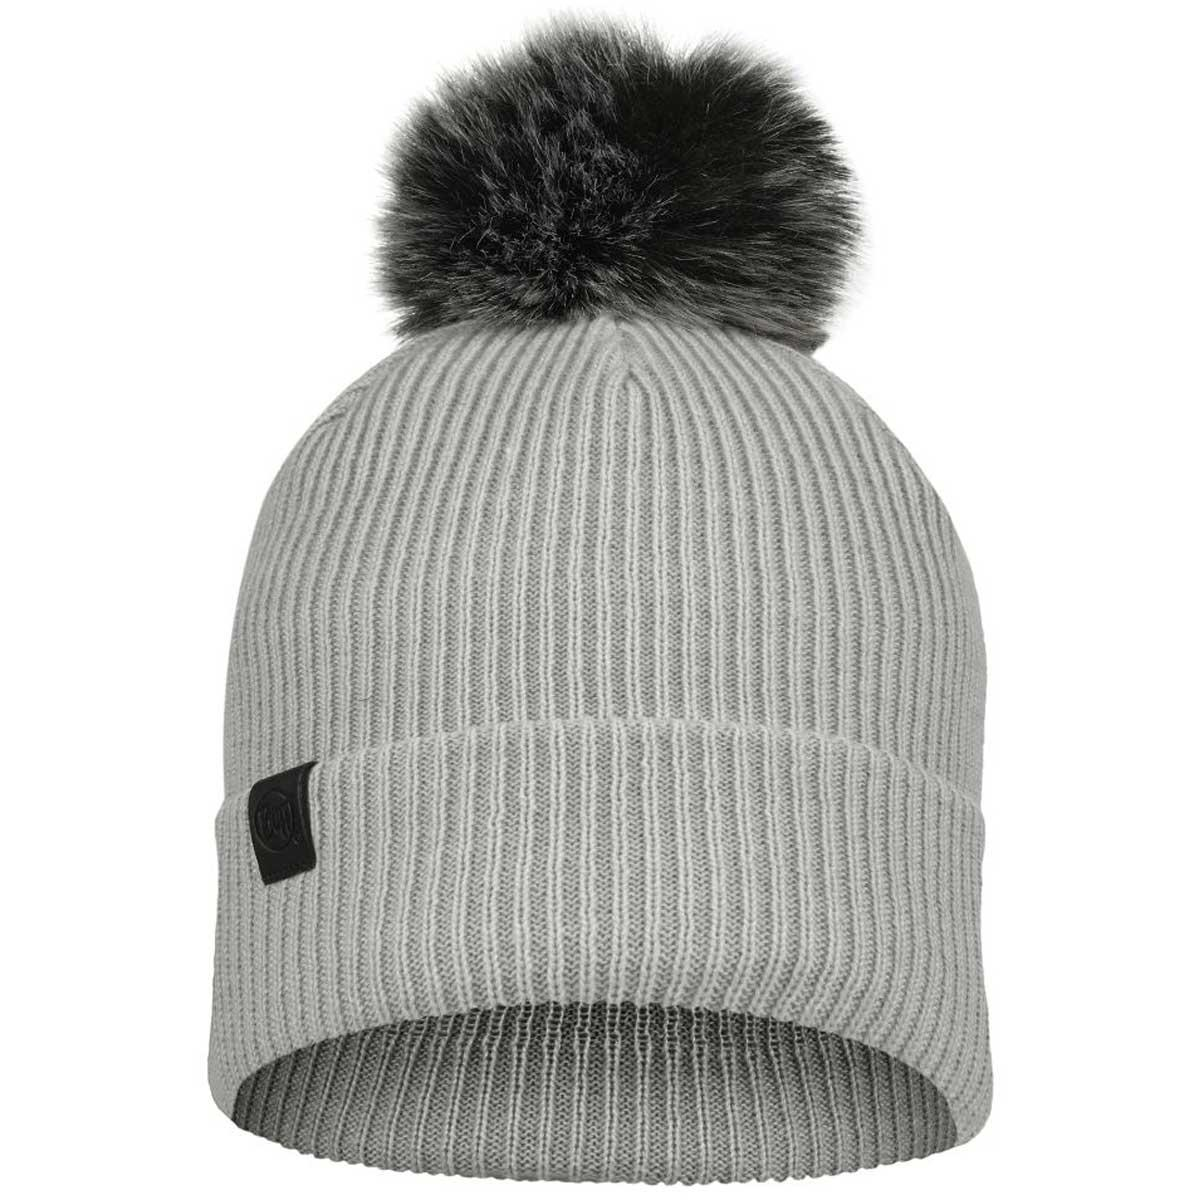 Buff Kesha Knit Hat in Cloud